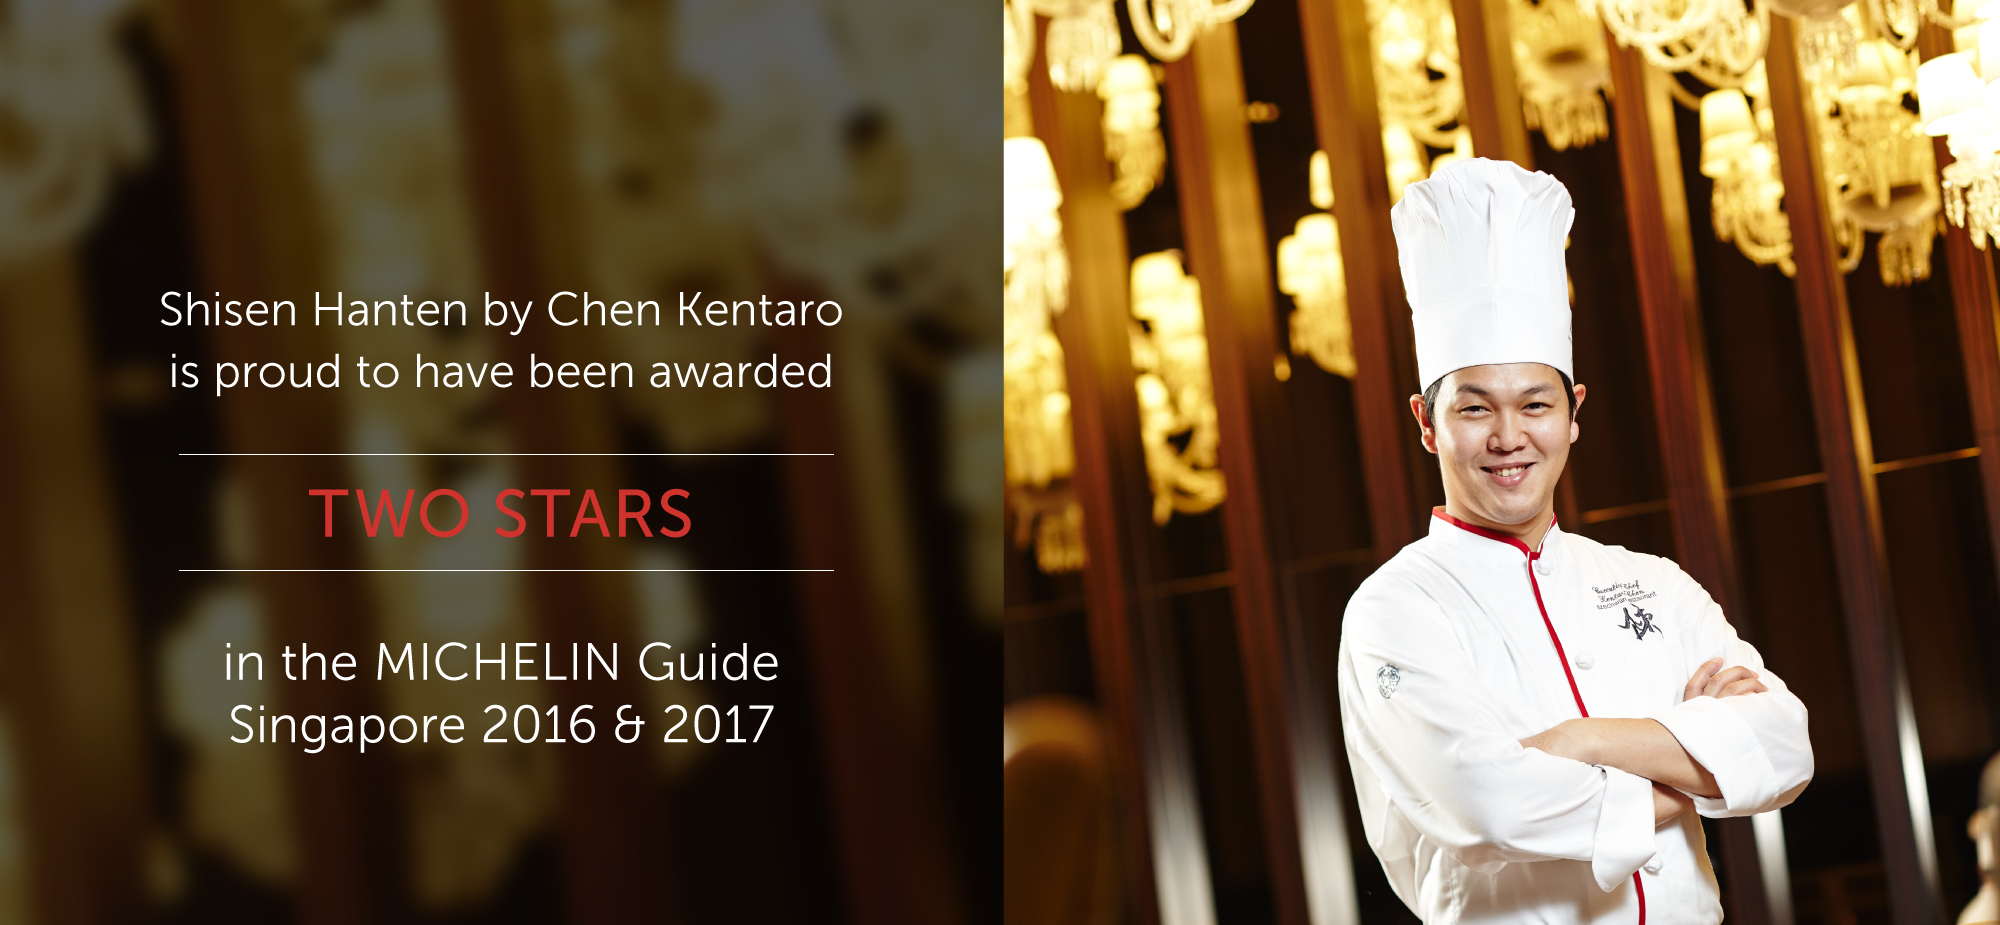 WS_MichelinGuide2017_SHWebsite_29Jun